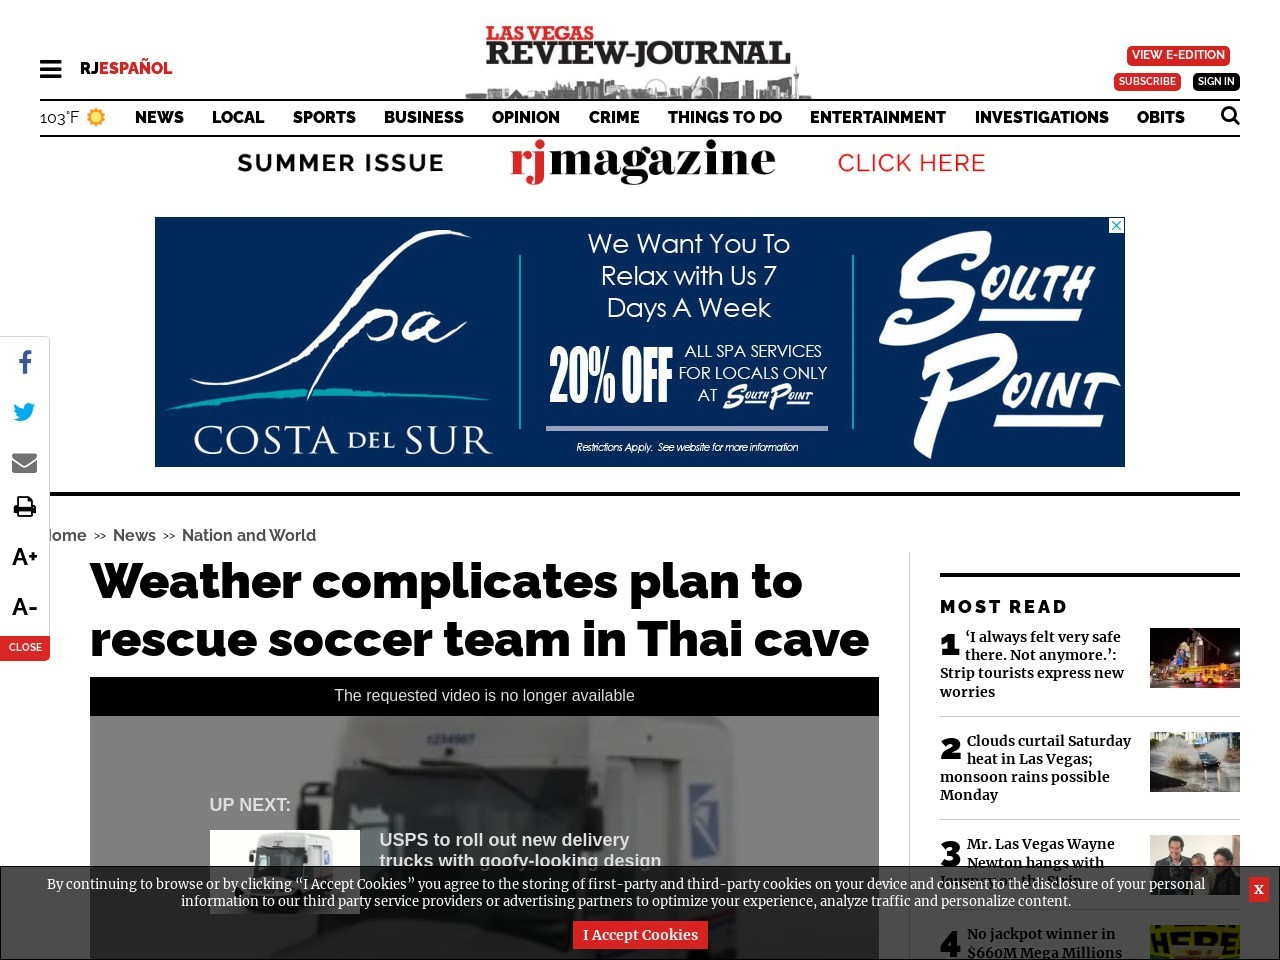 Weather complicates plan to rescue soccer team in Thai cave